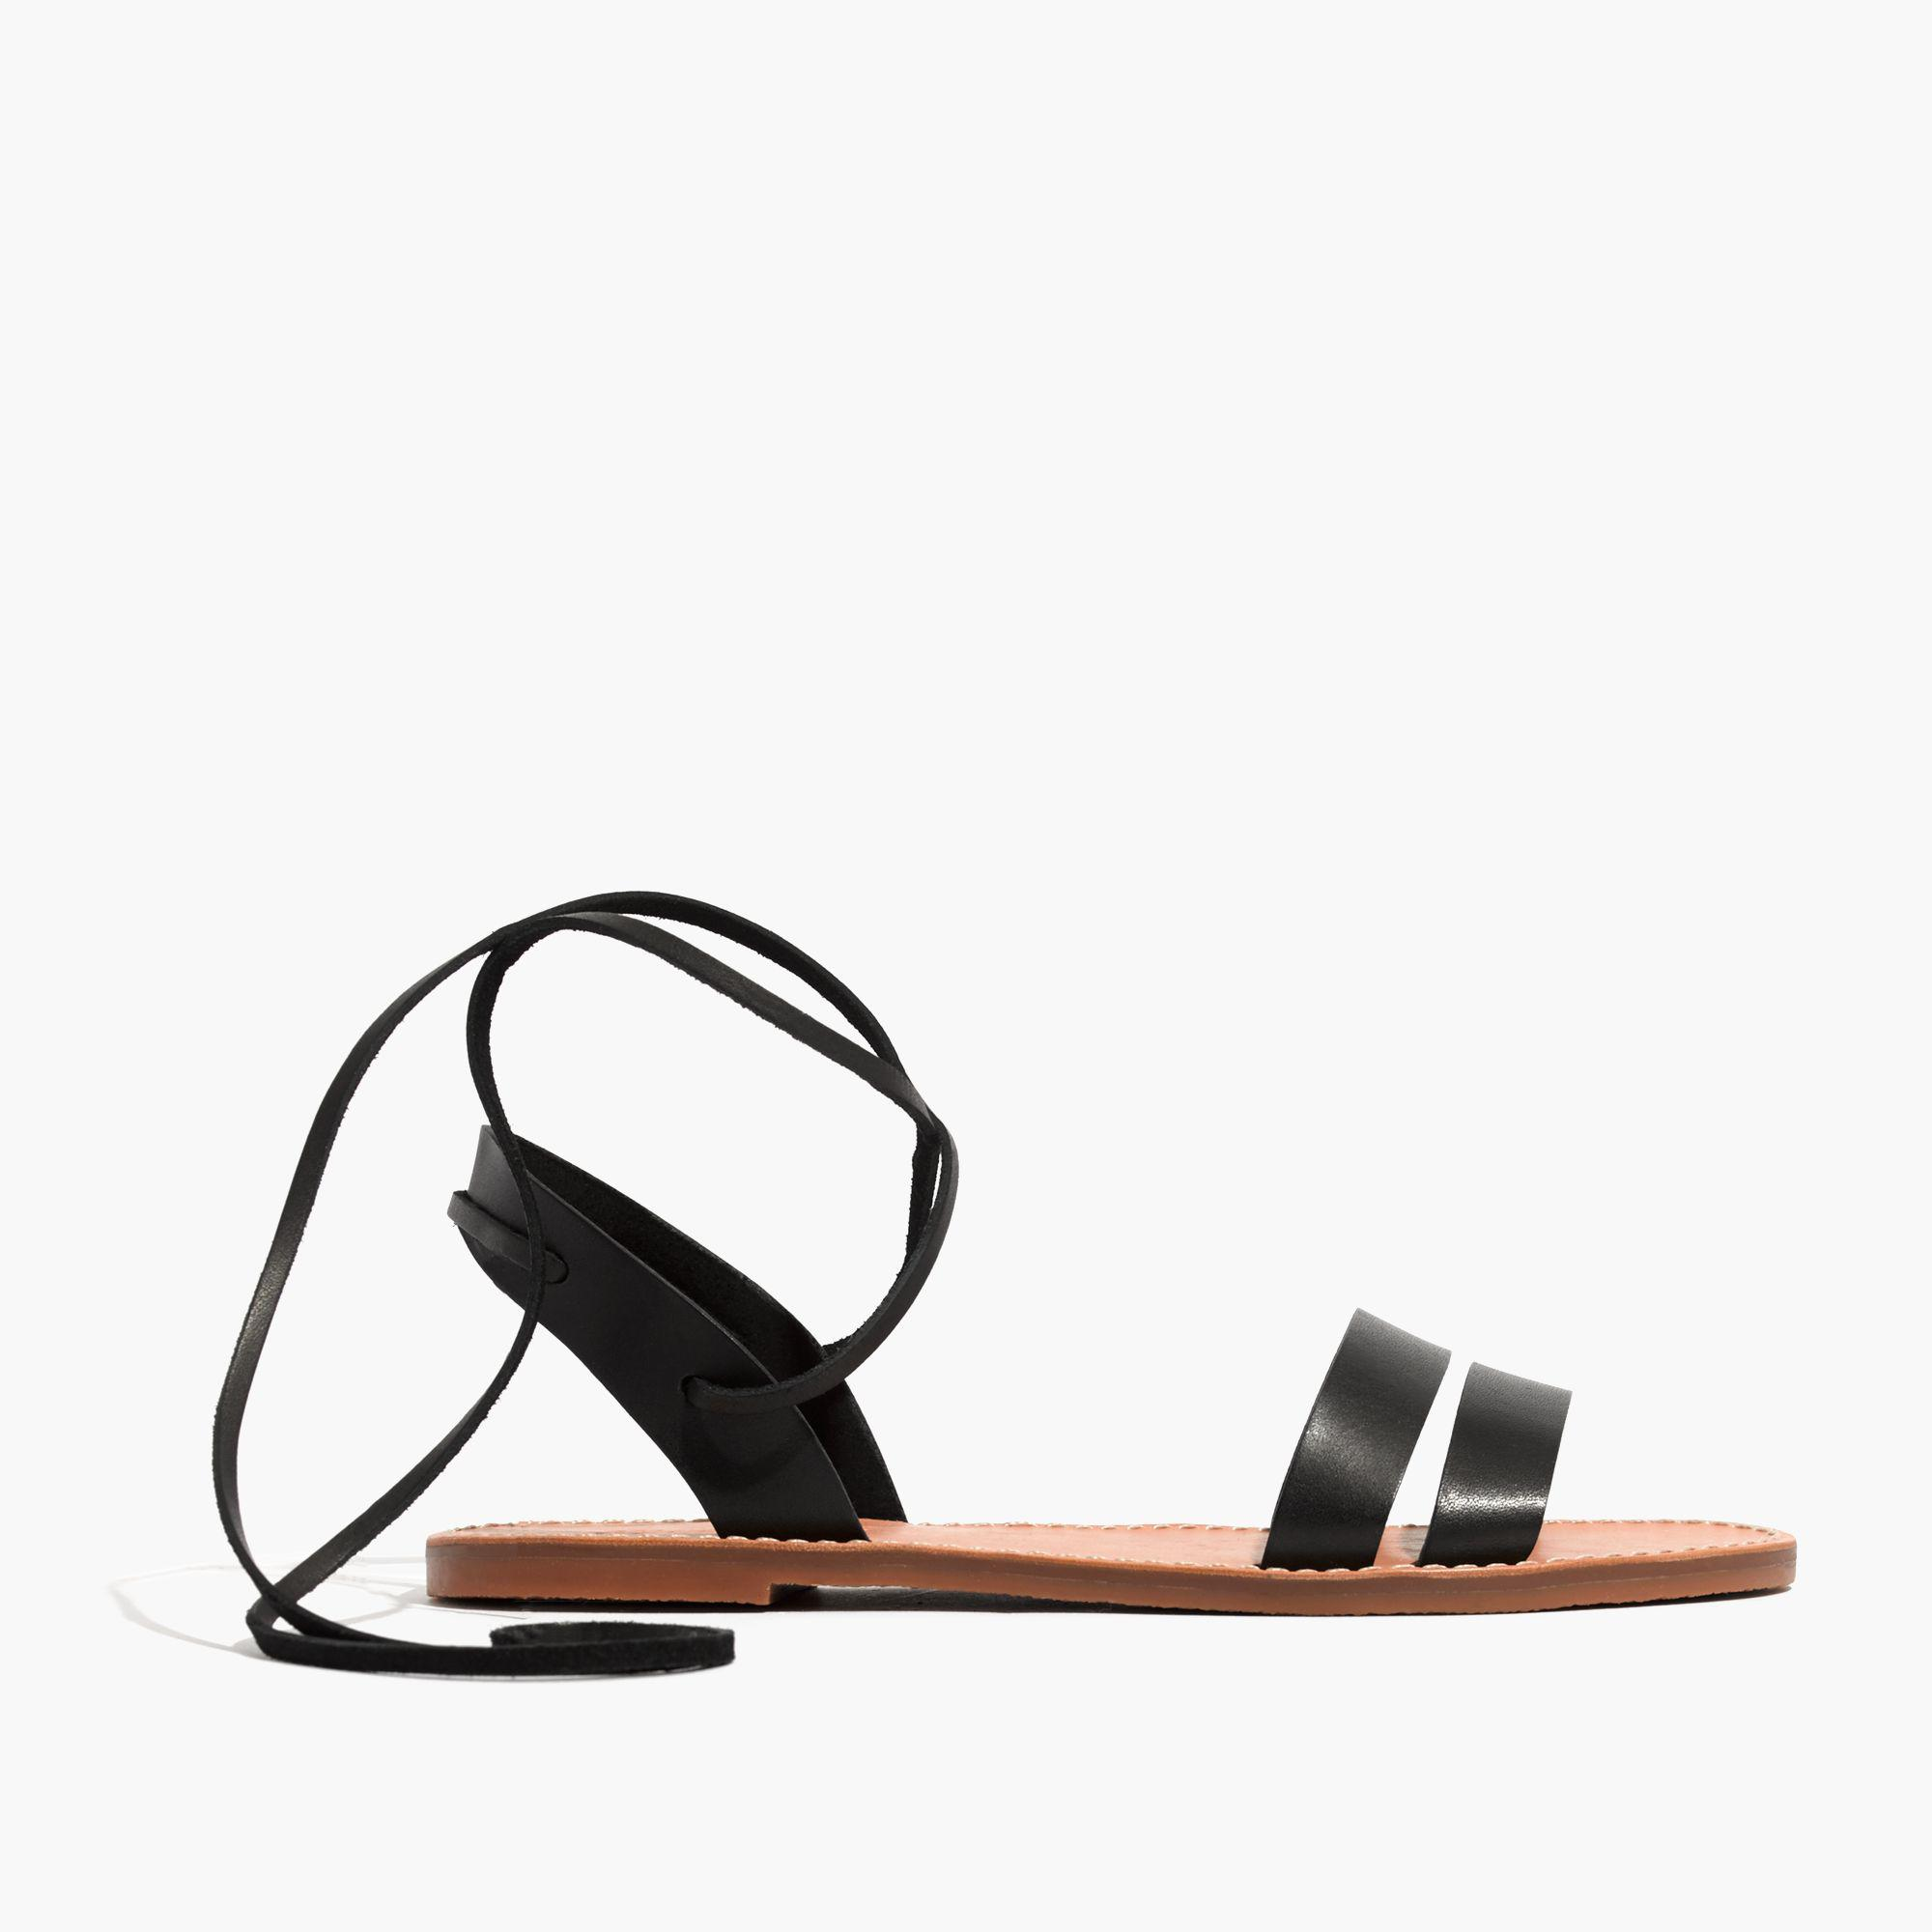 da3c7e2a5759 Lyst - Madewell The Boardwalk Ankle-tie Sandal in Black